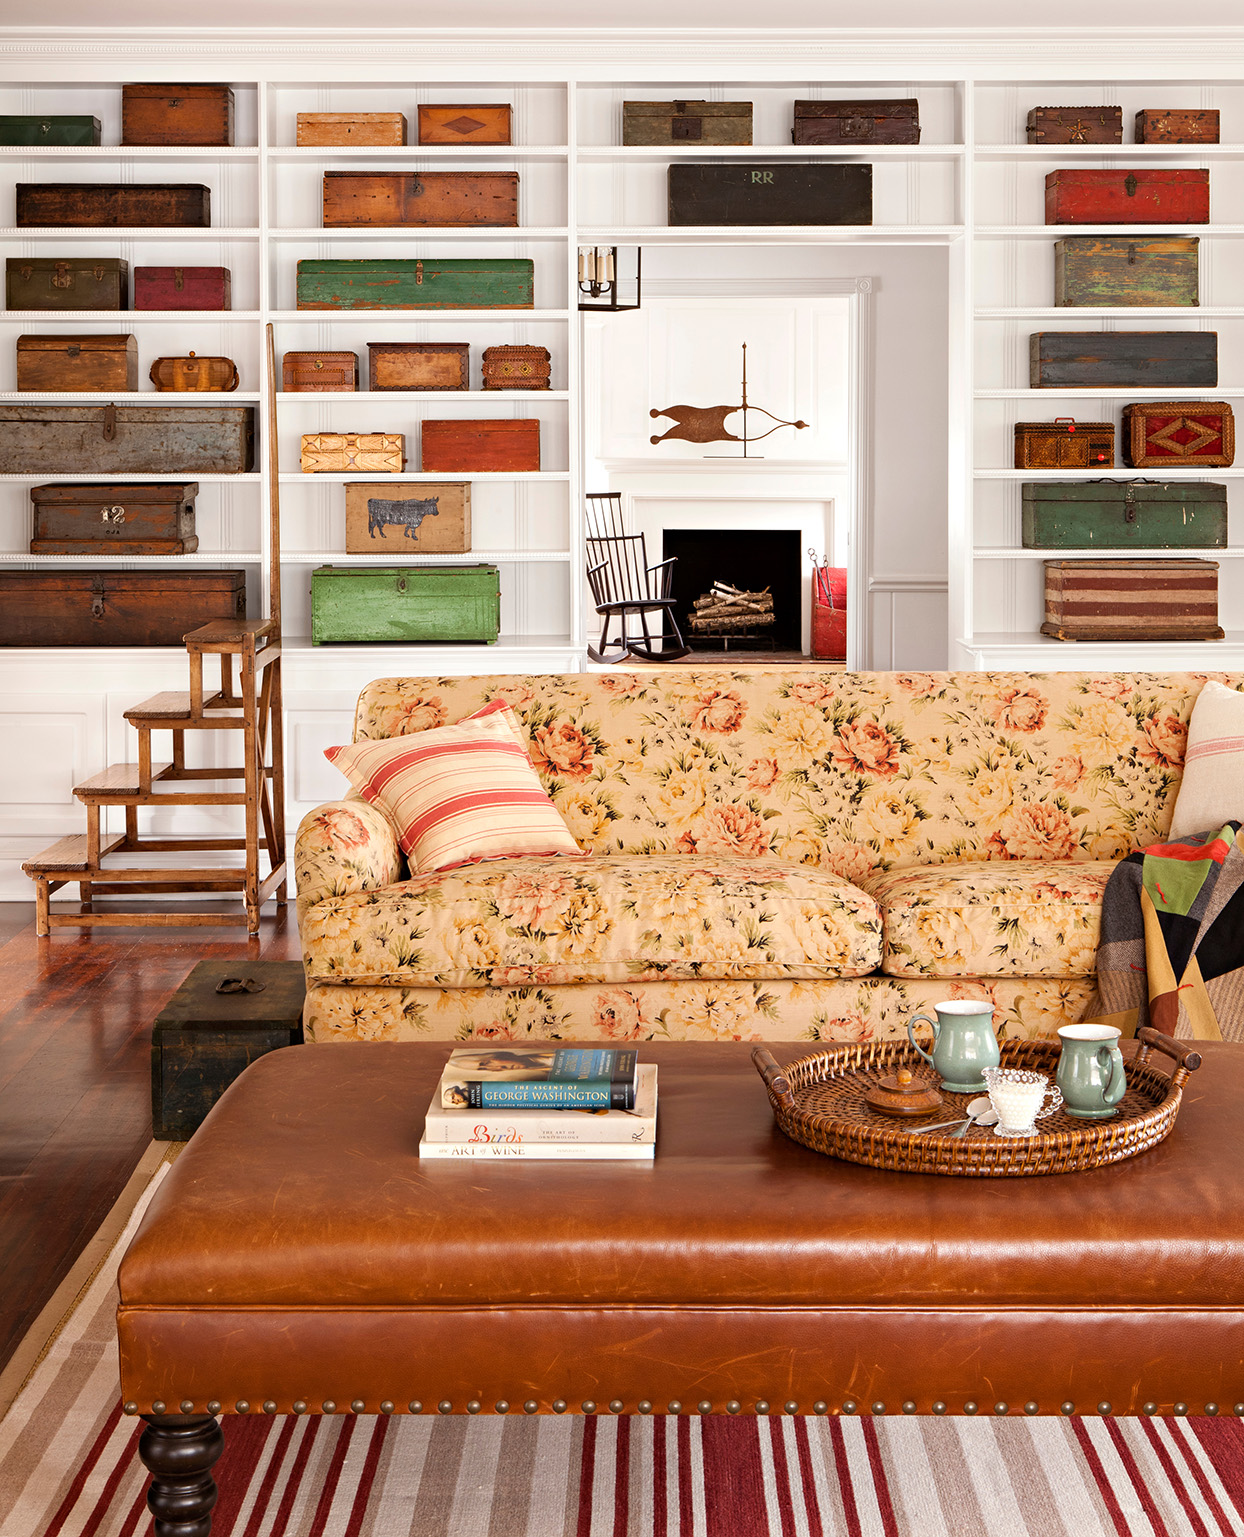 living room with white built-in shelving and patterned sofa